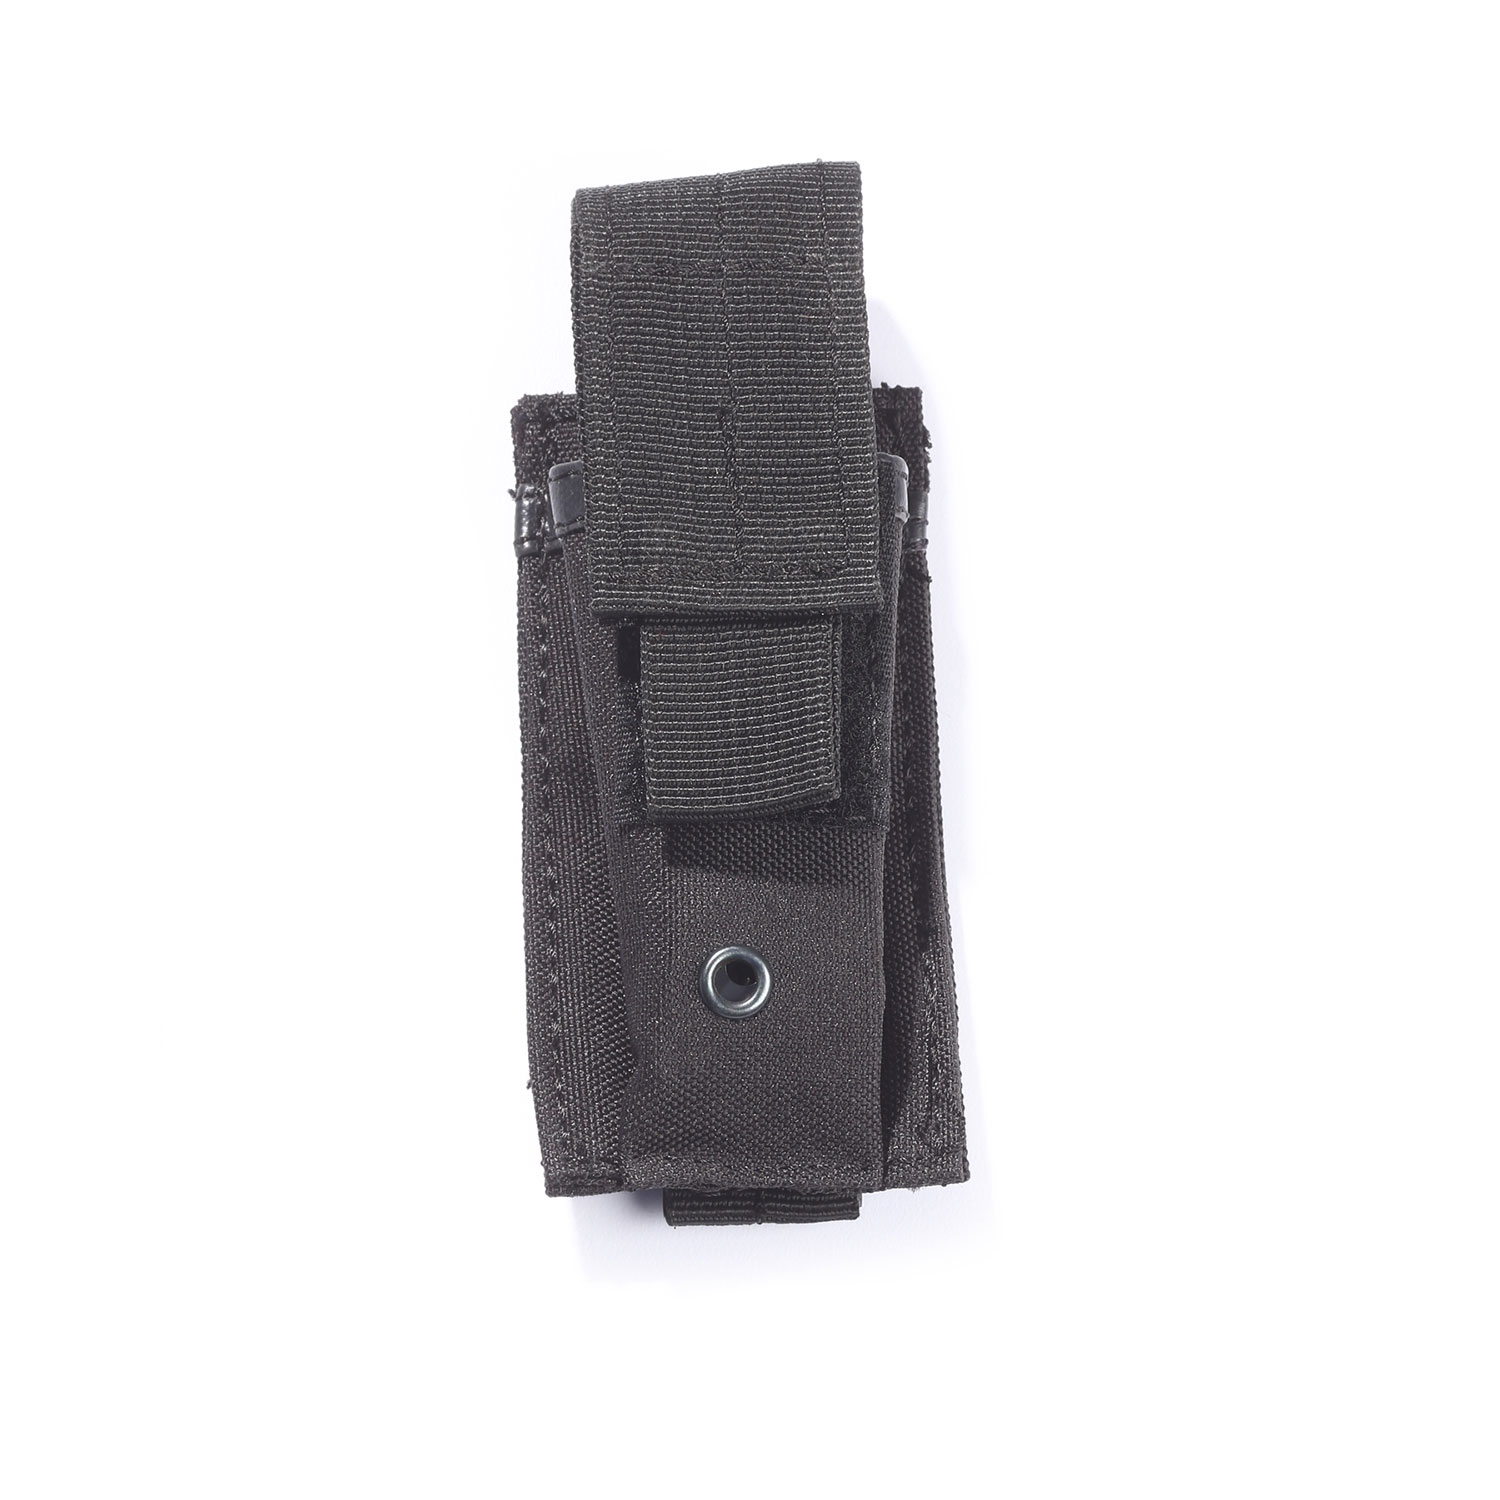 5ive Star Gear Single Pistol Mag Pouch